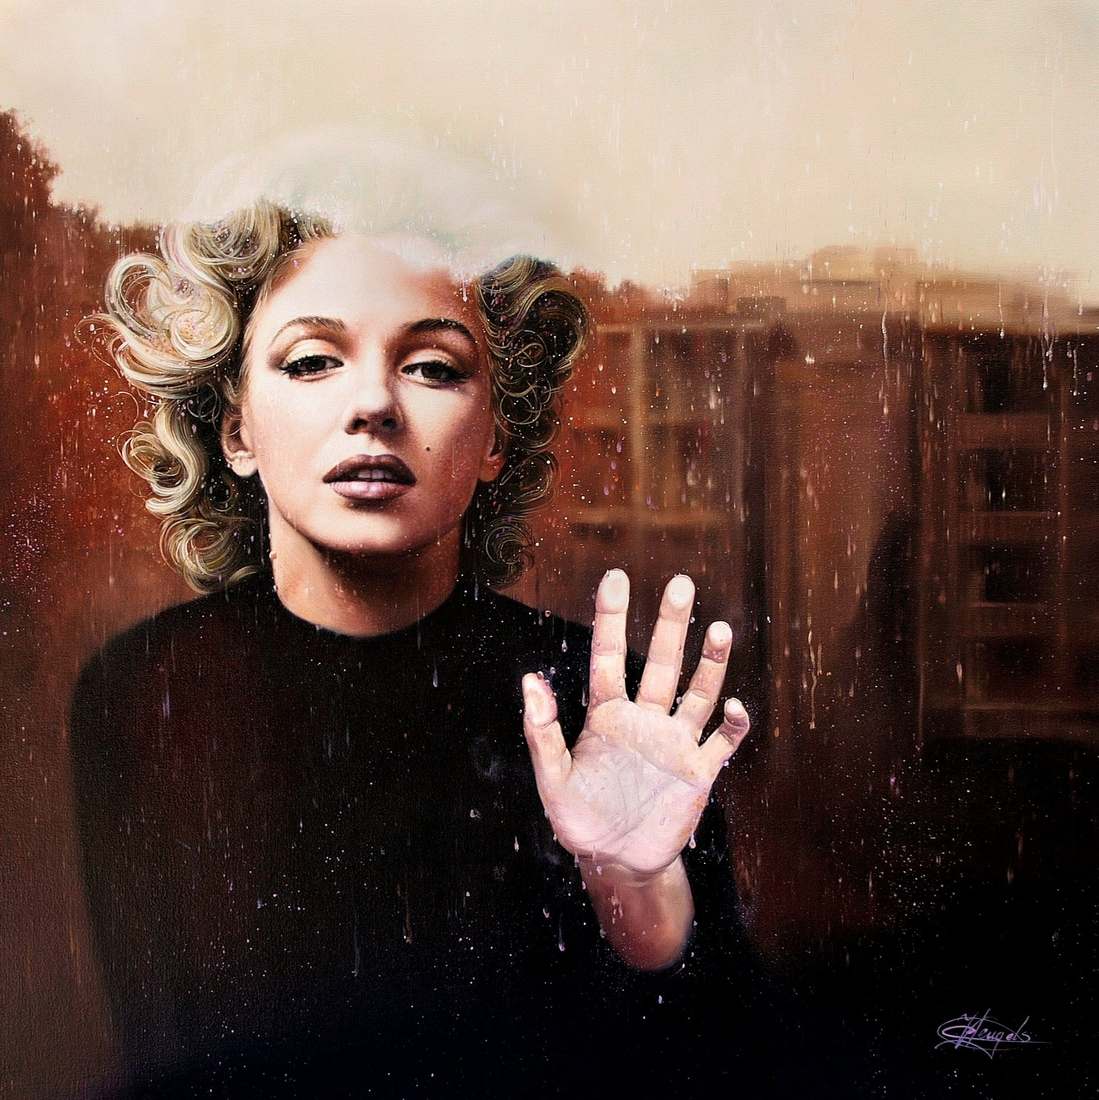 06-Marilyn-Monroe-Christiane-Vleugels-Flawless-Paintings-with-Incredible-Detail-www-designstack-co